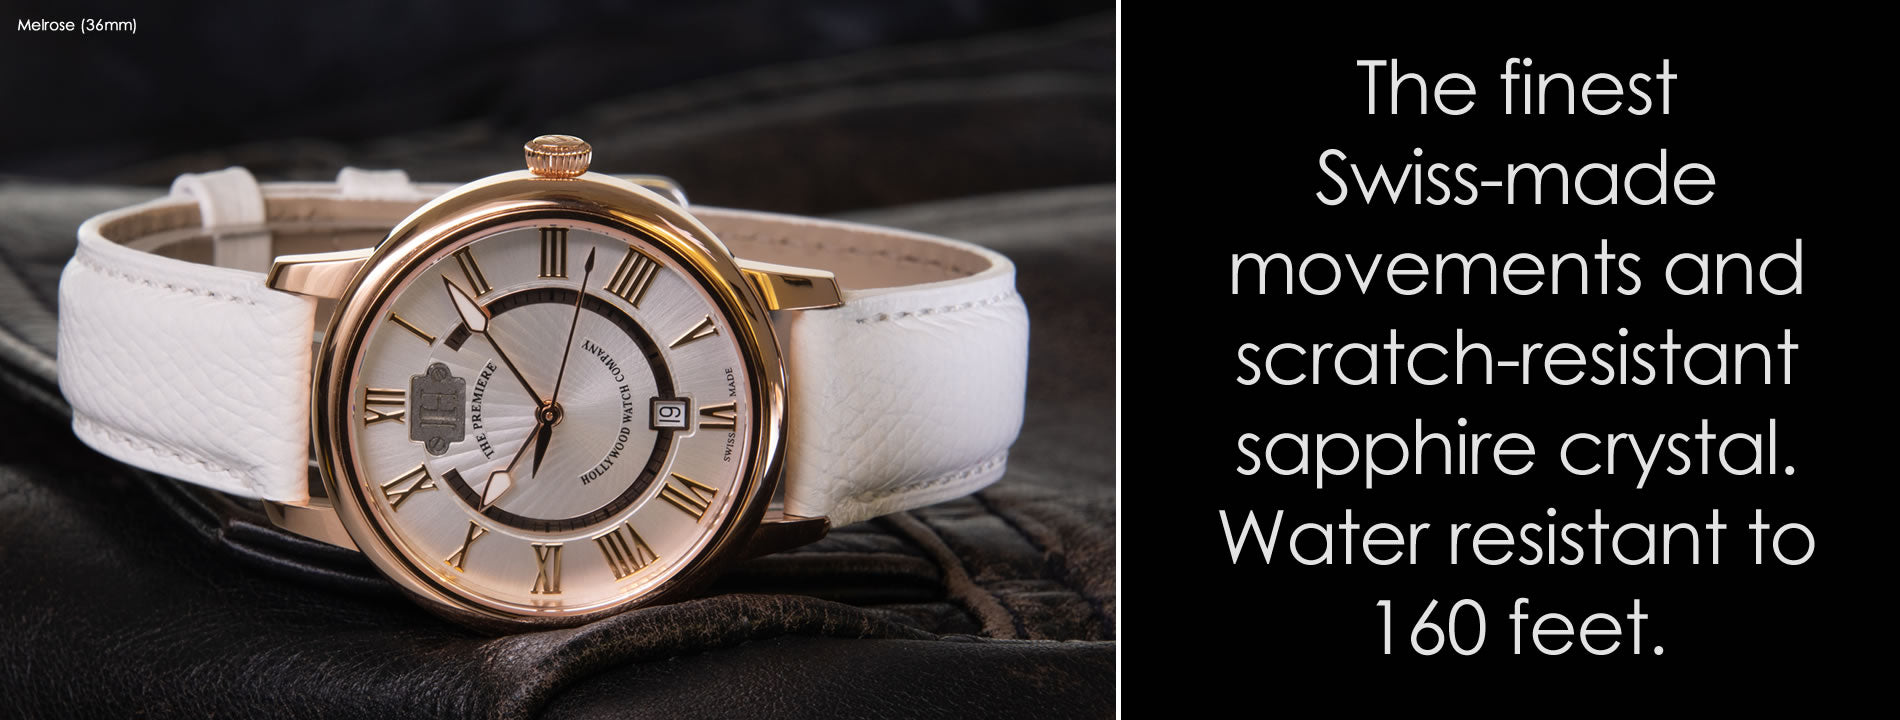 The finest Swiss-made movements and scratch-resistant sapphire crystal. Water resistant to 160 feet.